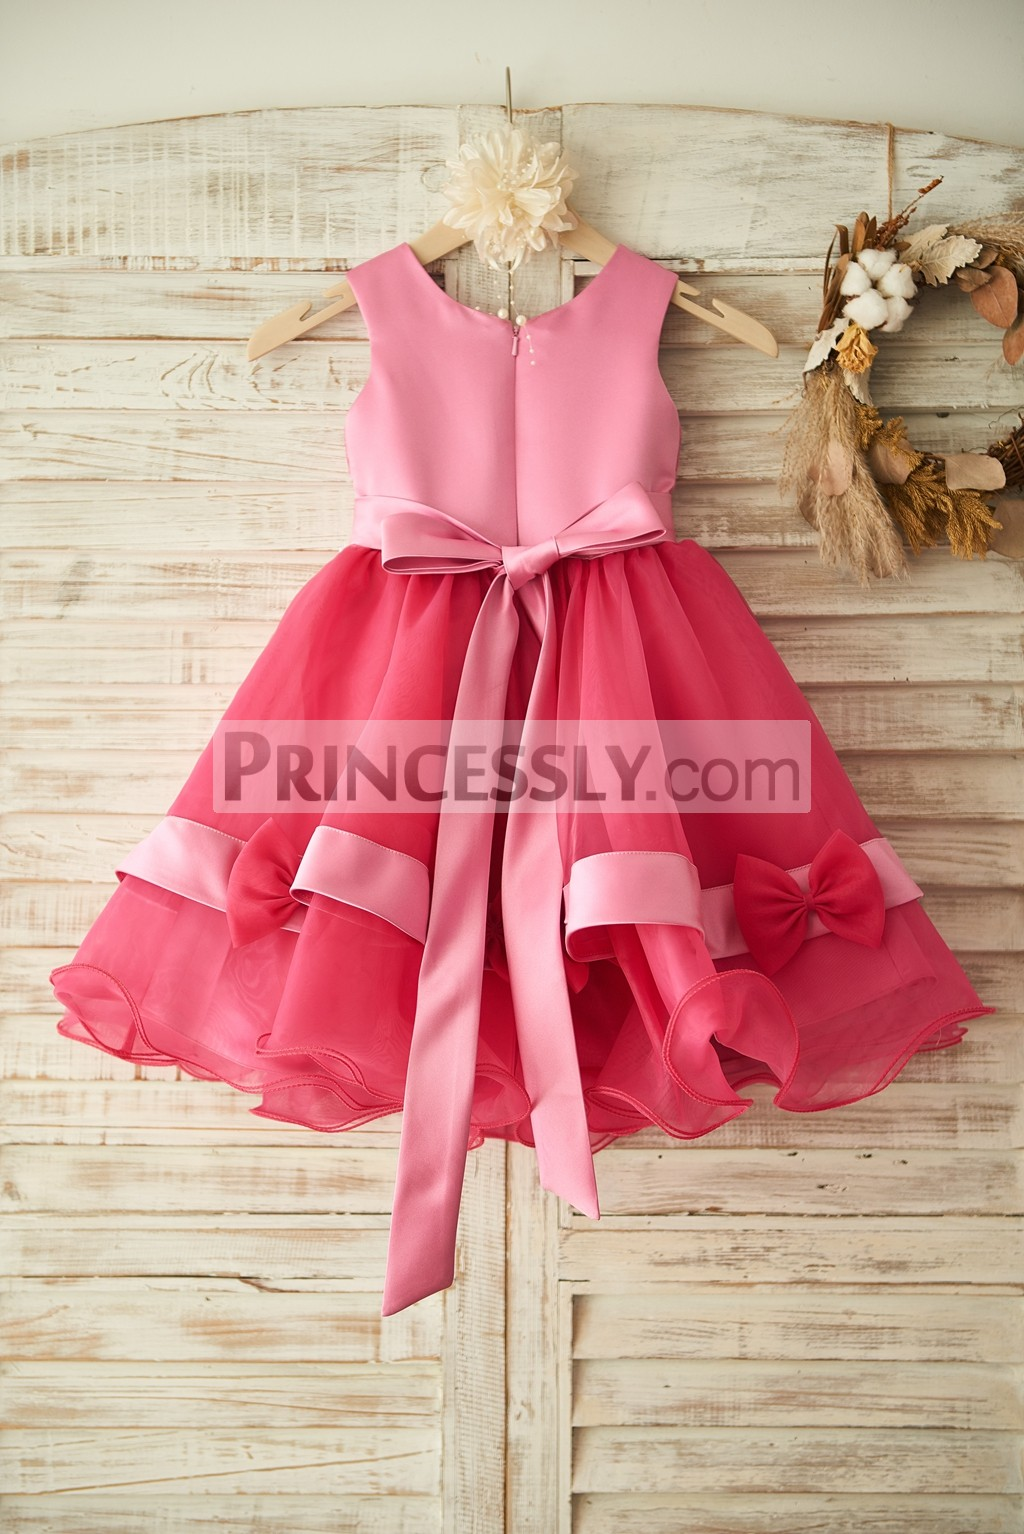 Satin Organza Wedding Baby Girl Dress